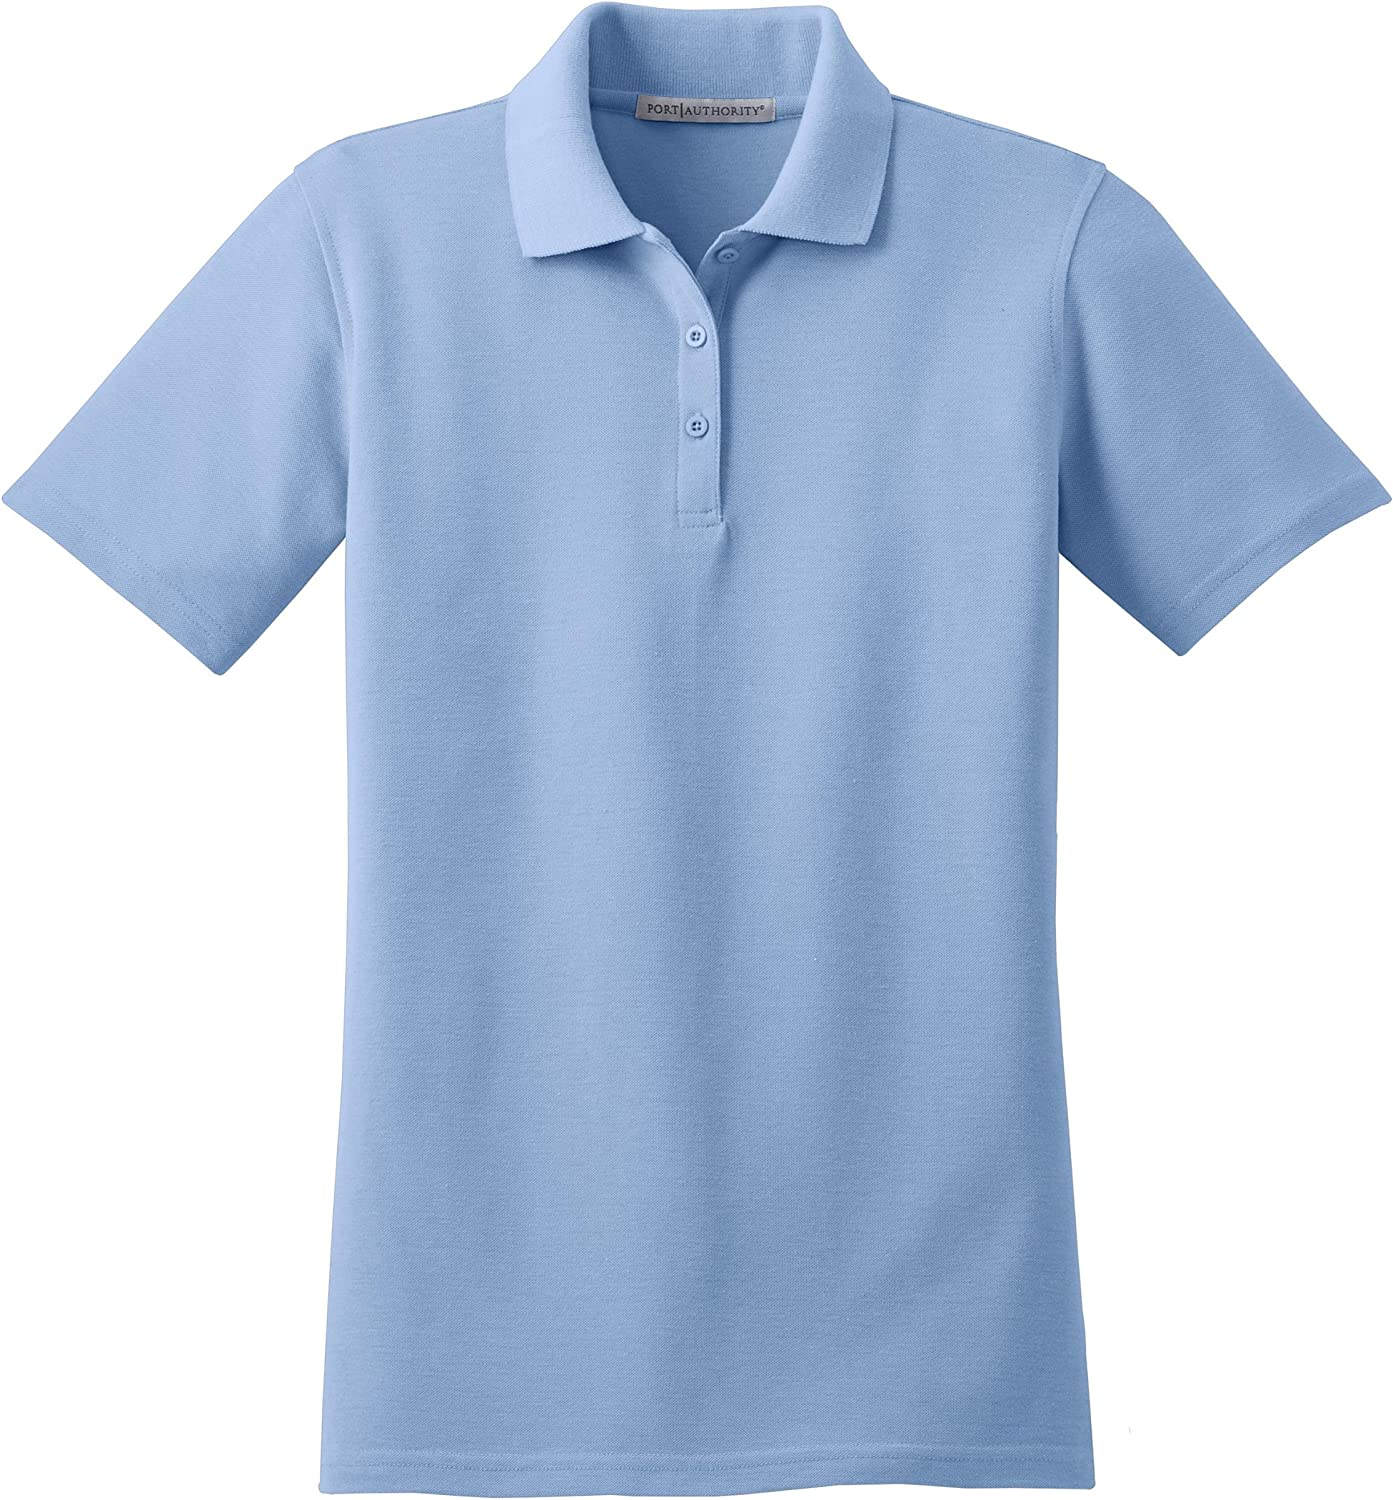 Port Authority Stain Resistant Polo (L510)